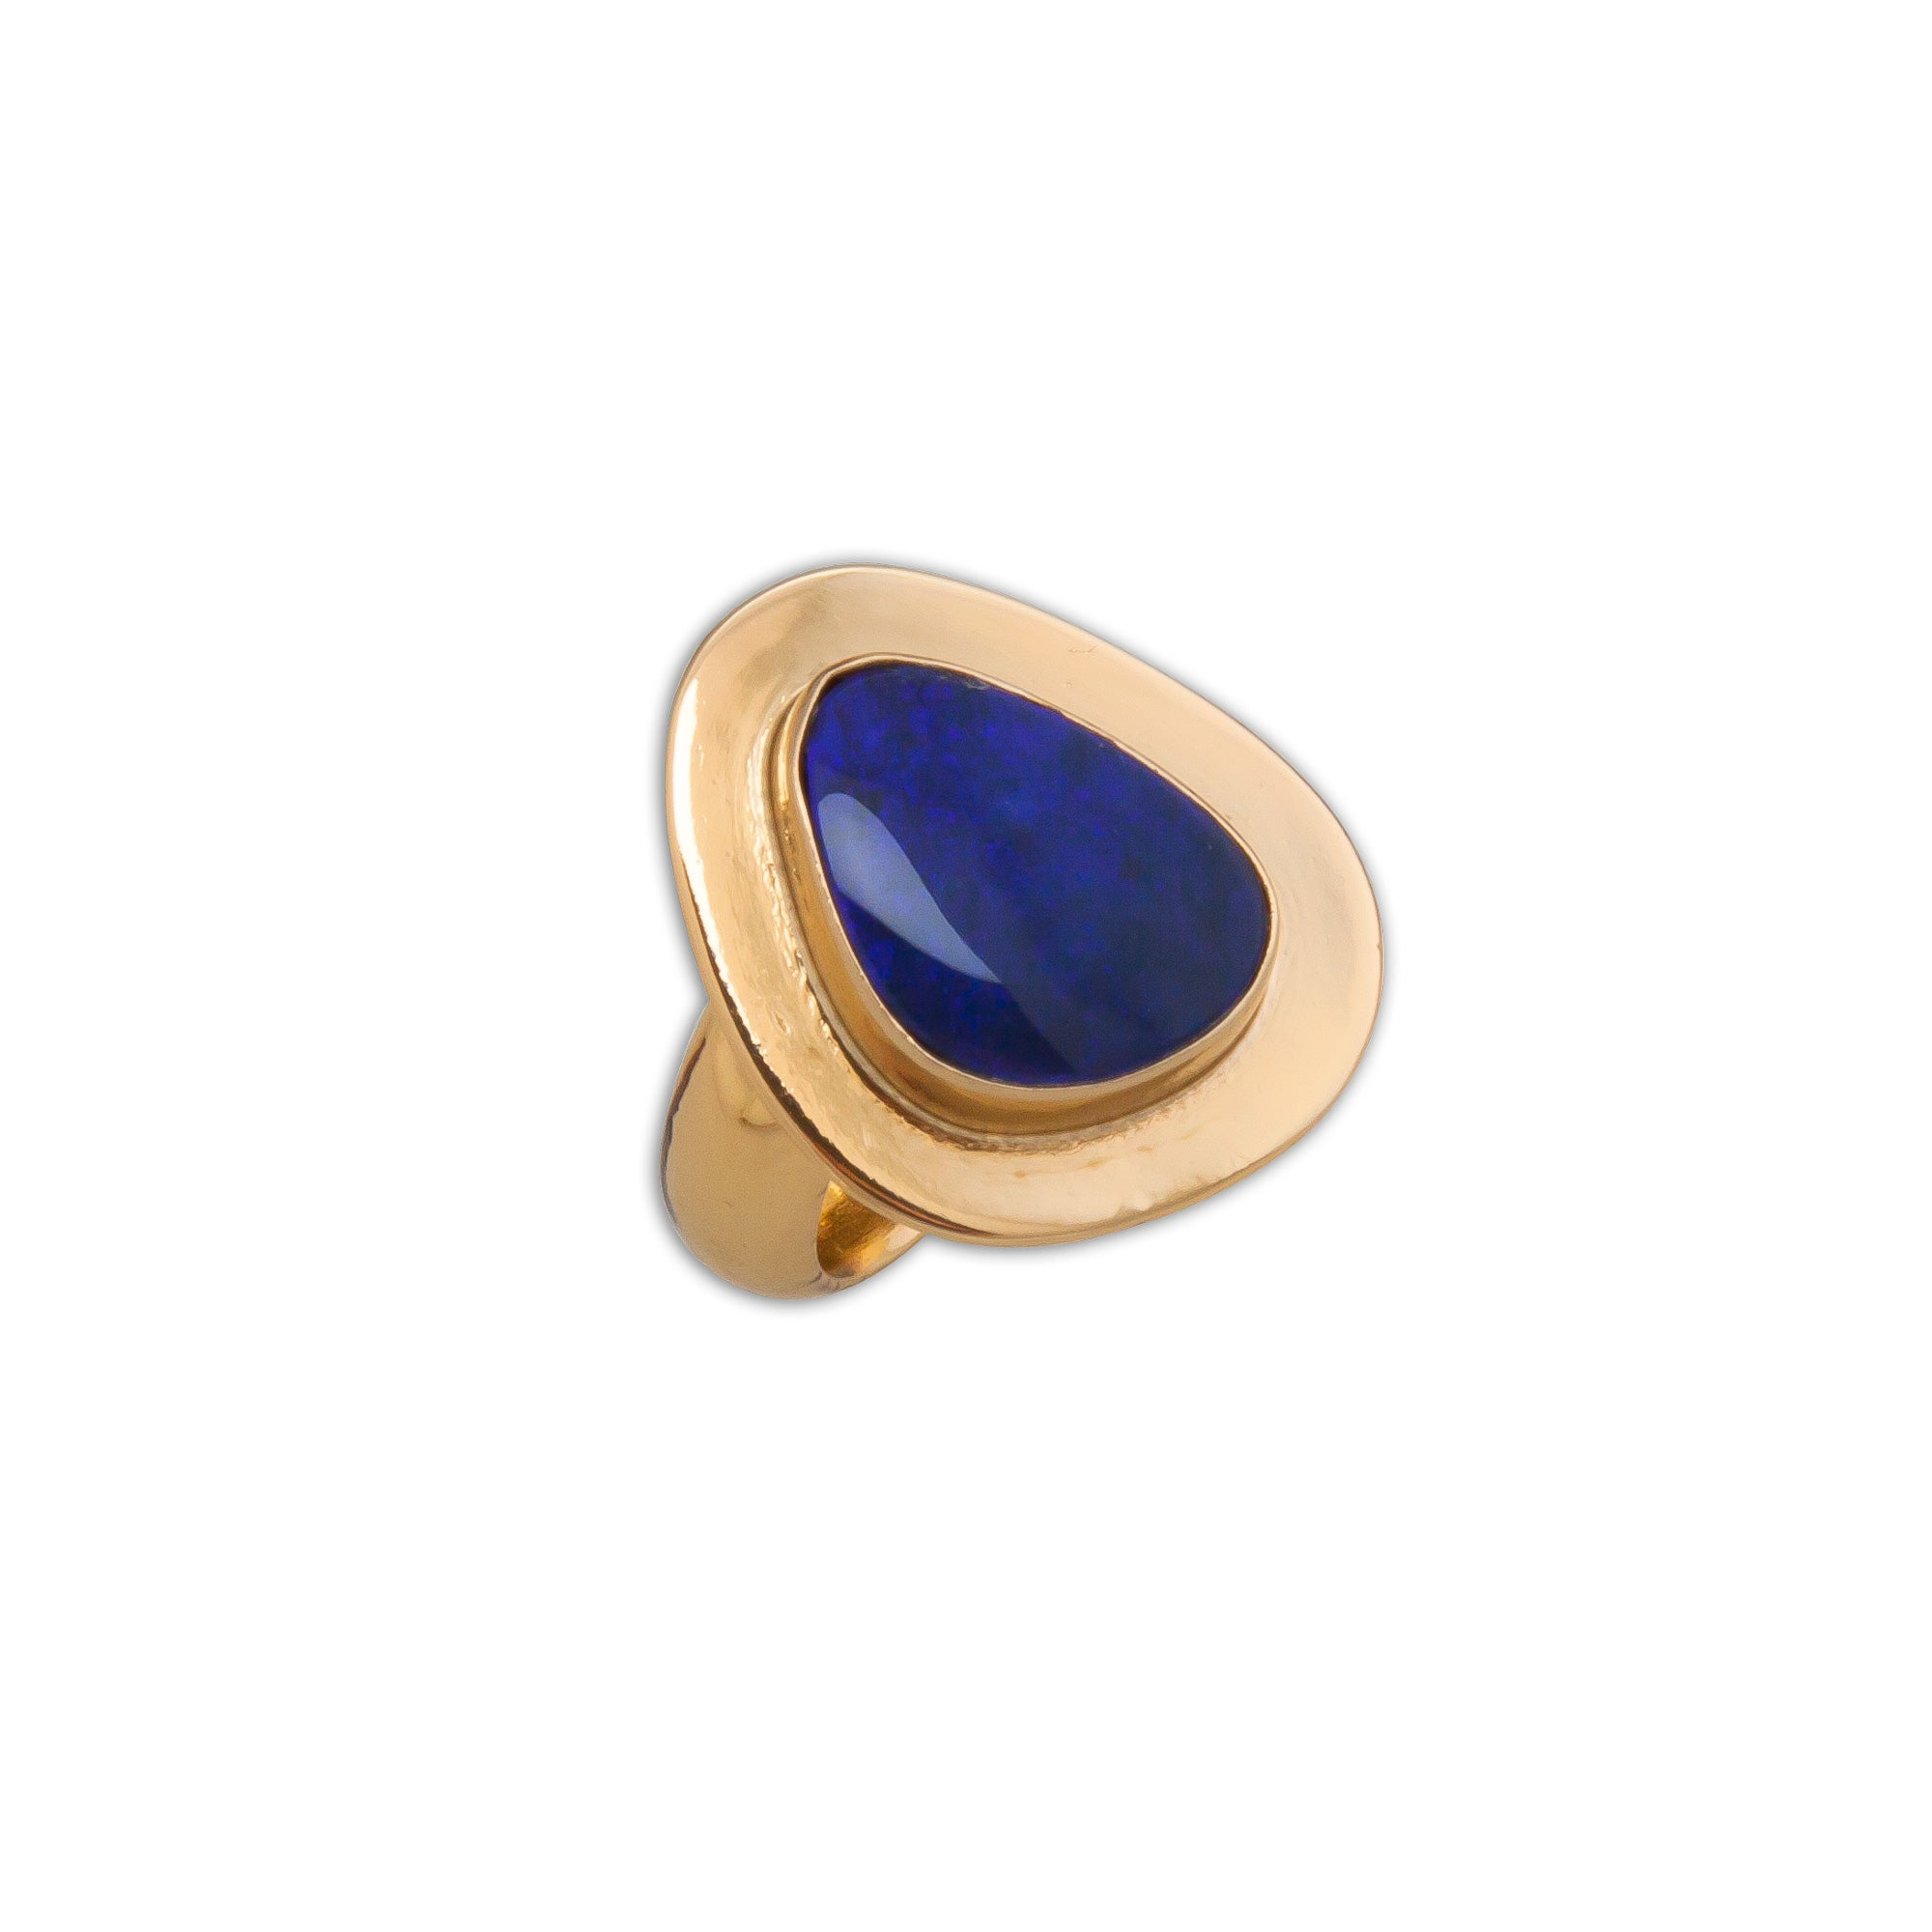 Alchemia Opal Adjustable Ring with Detailed Edge | Charles Albert Jewelry